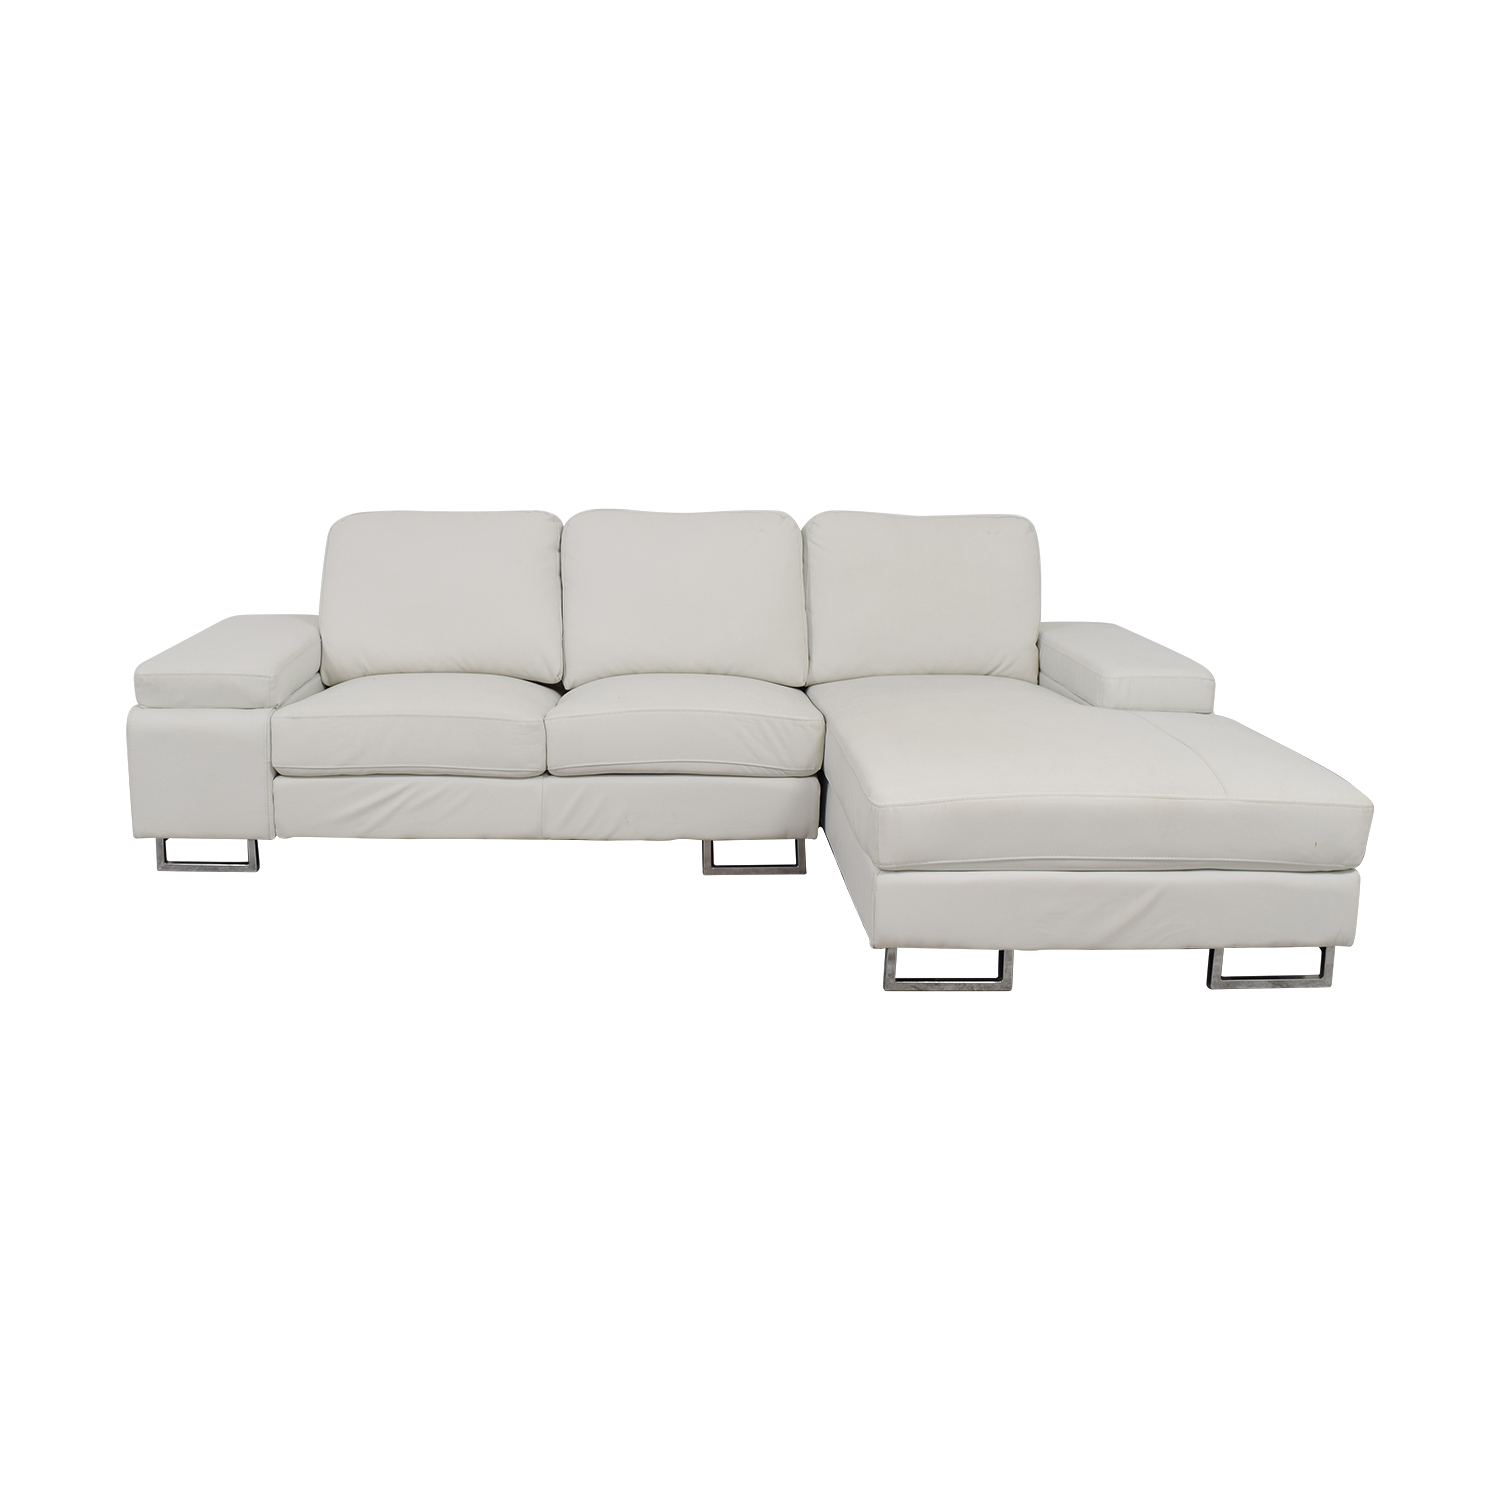 Lumens White Leather Chaise Sectional With Arm Storage Lumens